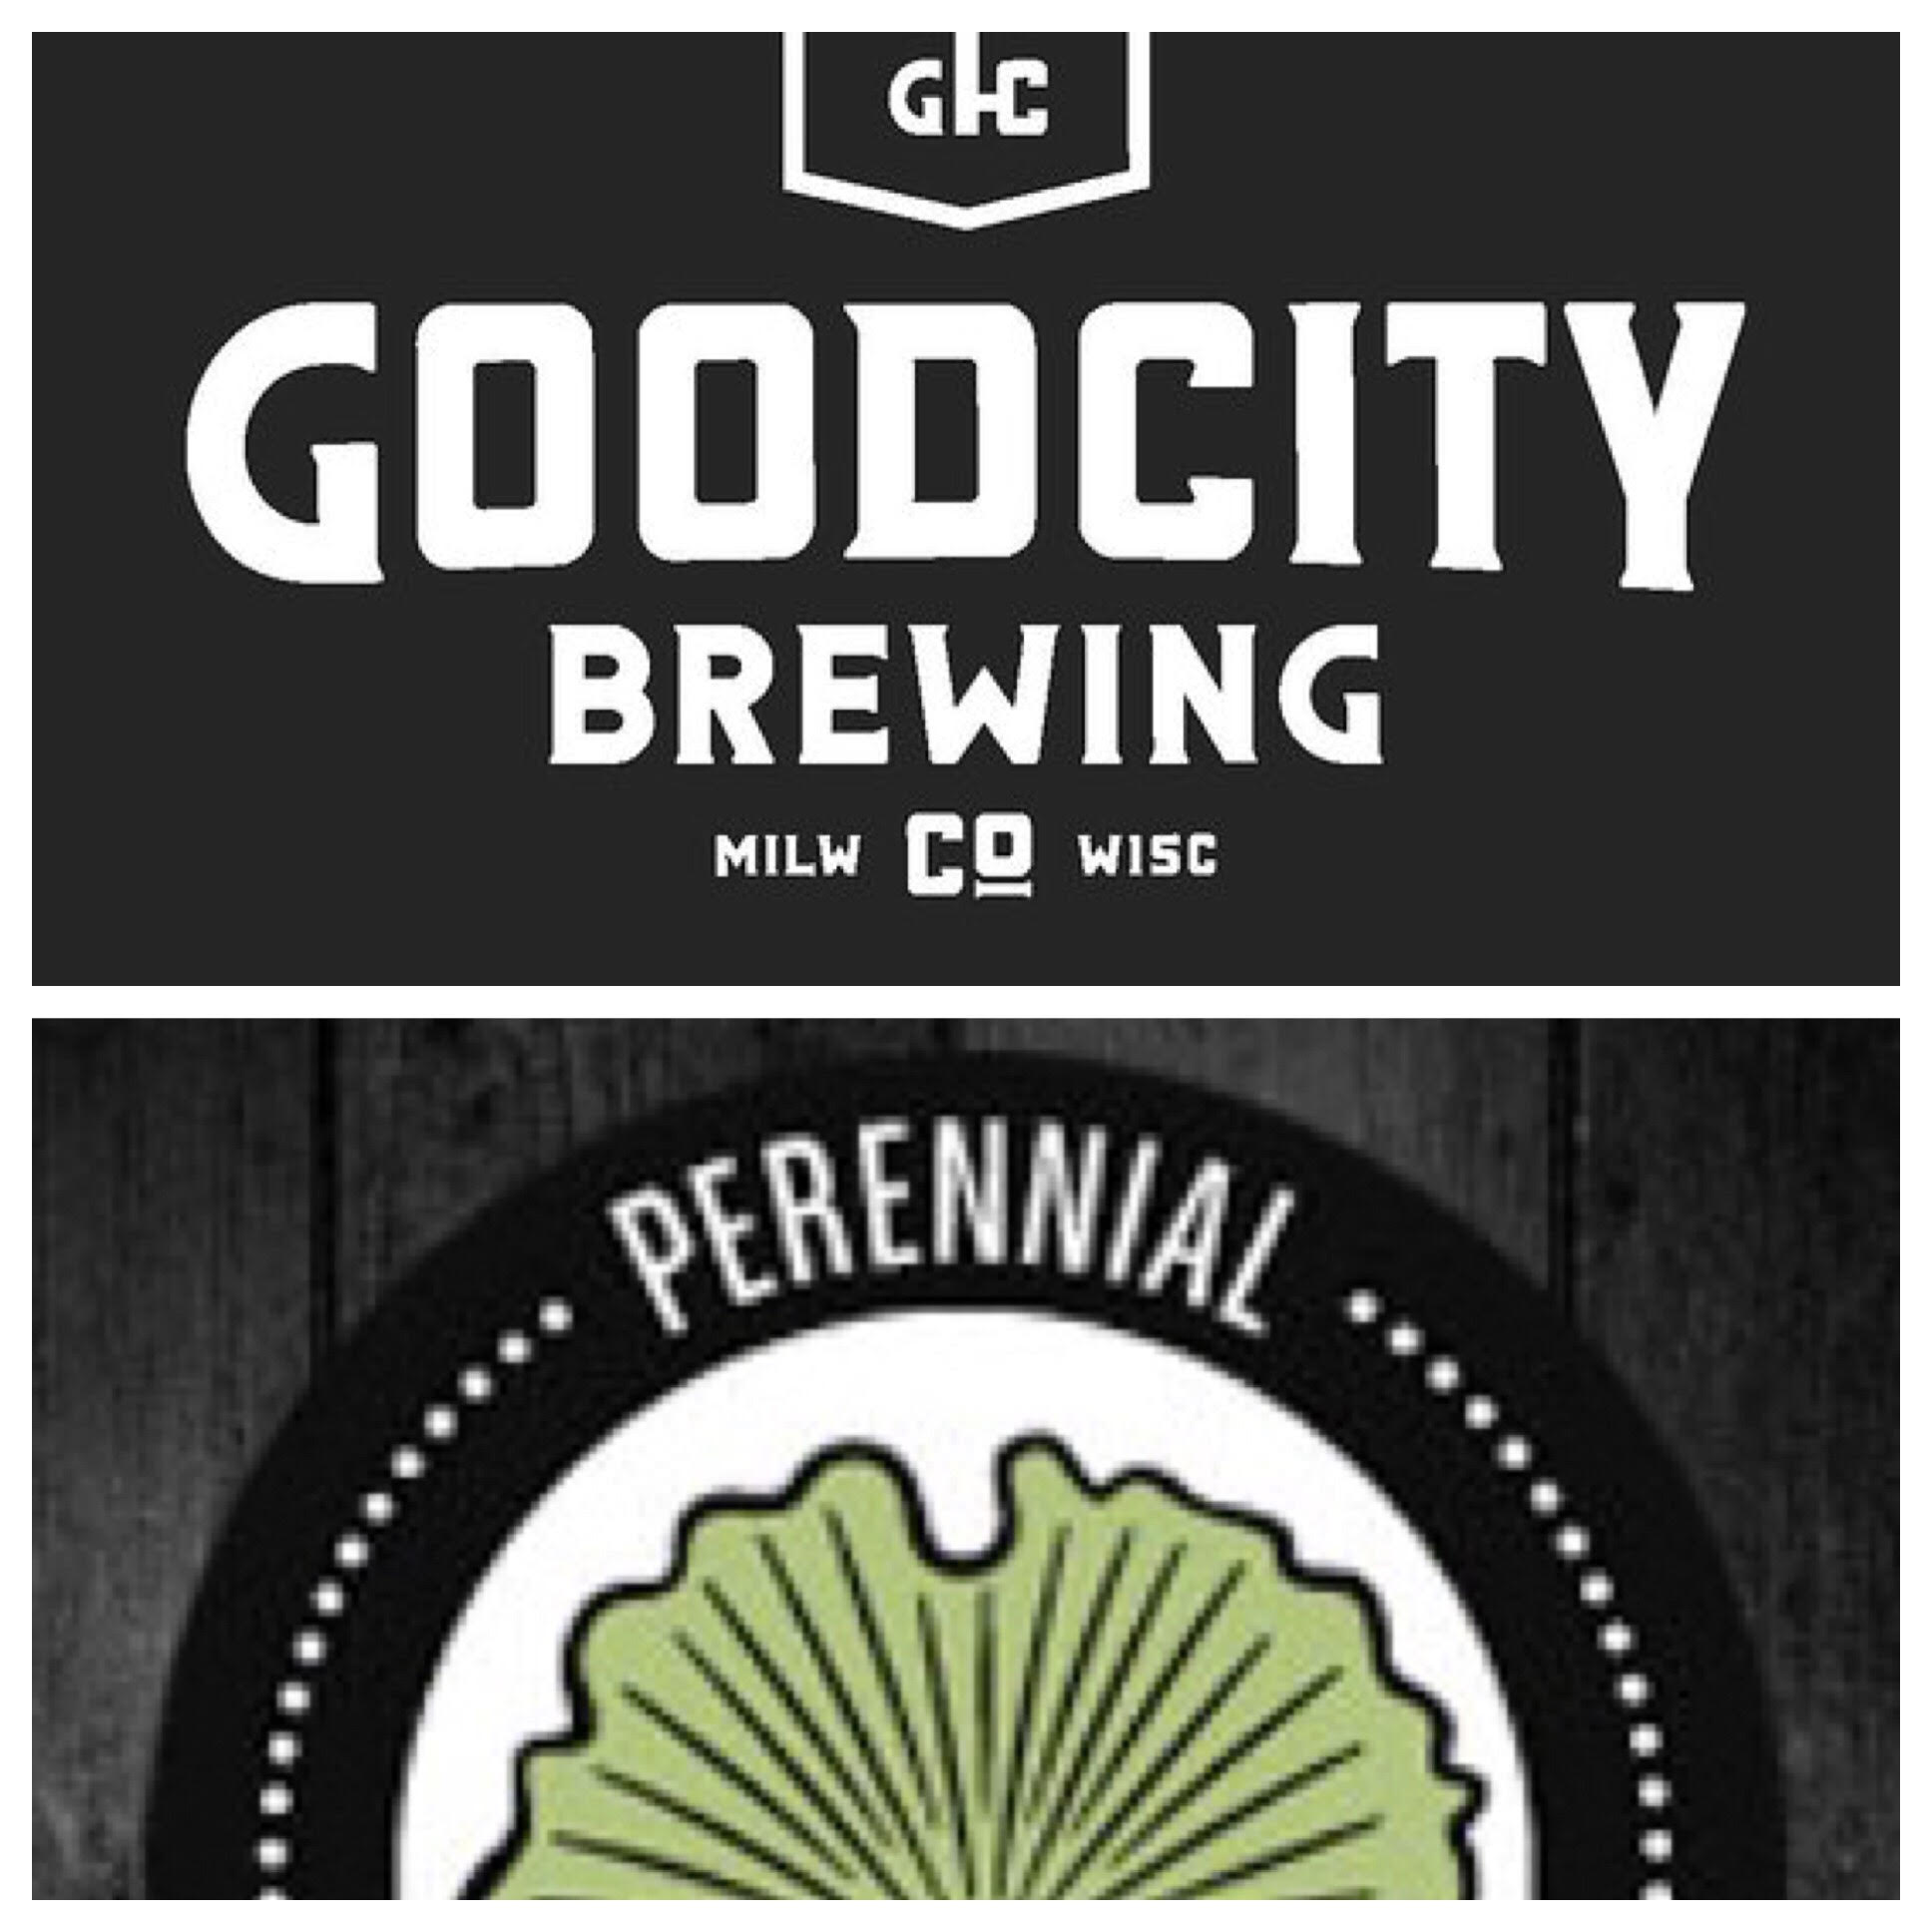 Pre-Great Taste Party w/Good City Brewing and Perennial Artisan Ales